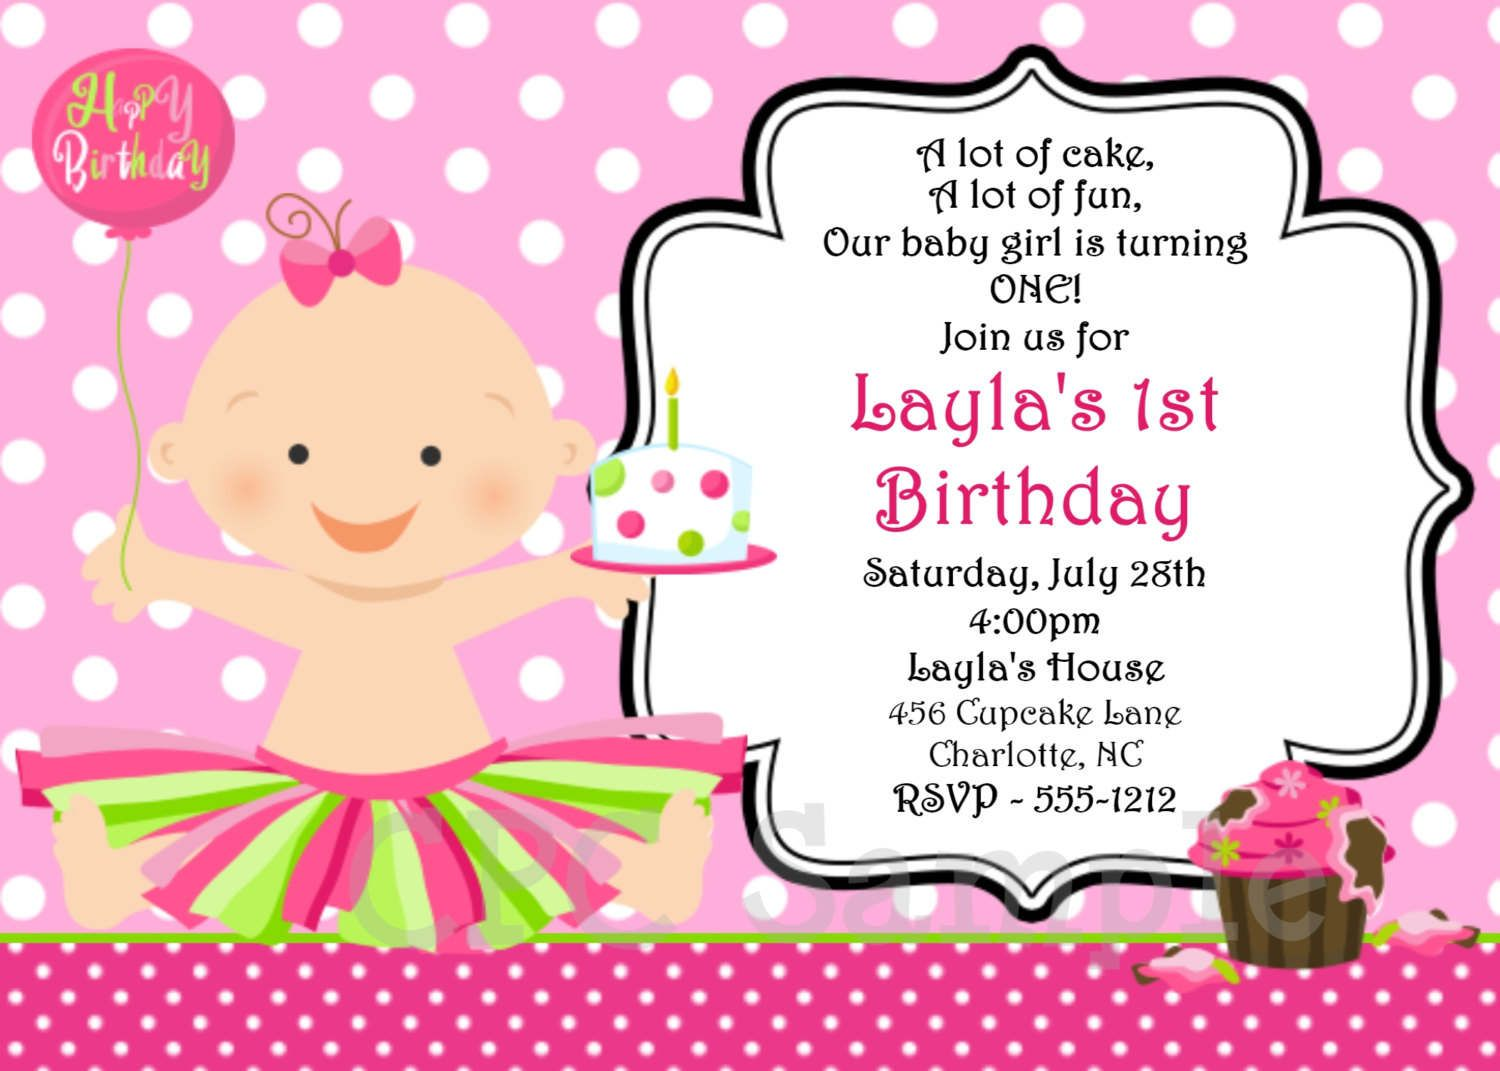 Birthday Invites Free Birthday Invitation Maker Images Downloads – Birthday Invite Template